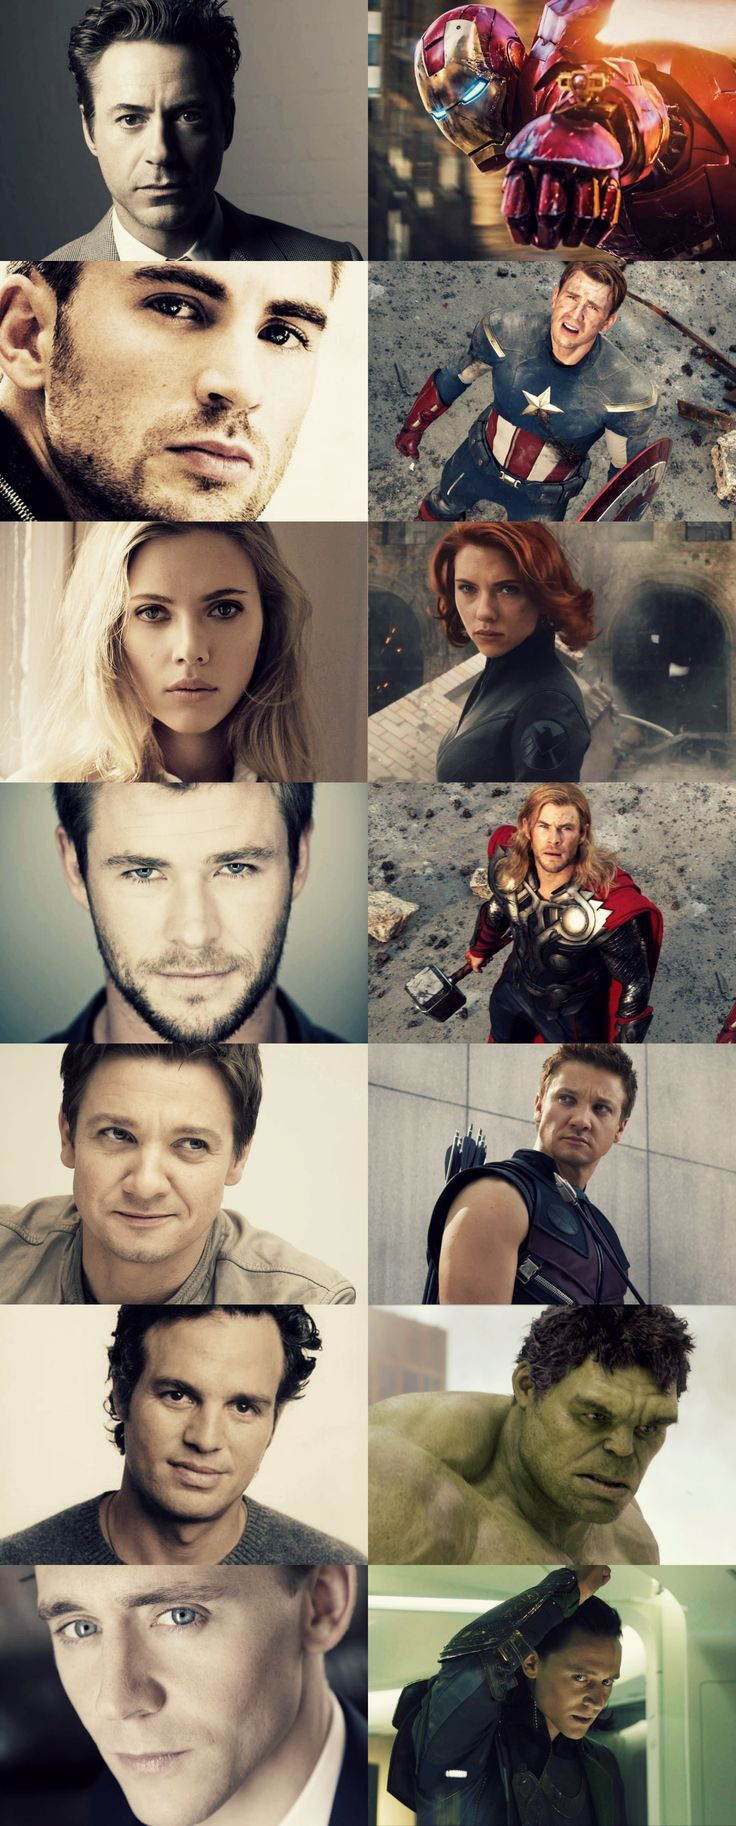 RDJ, Chris Evans, Scarlett Johansson, Christ Hemsworth, Jeremy Renner, Mark Ruffalo, Tom Hiddleston {The Avengers Cast}